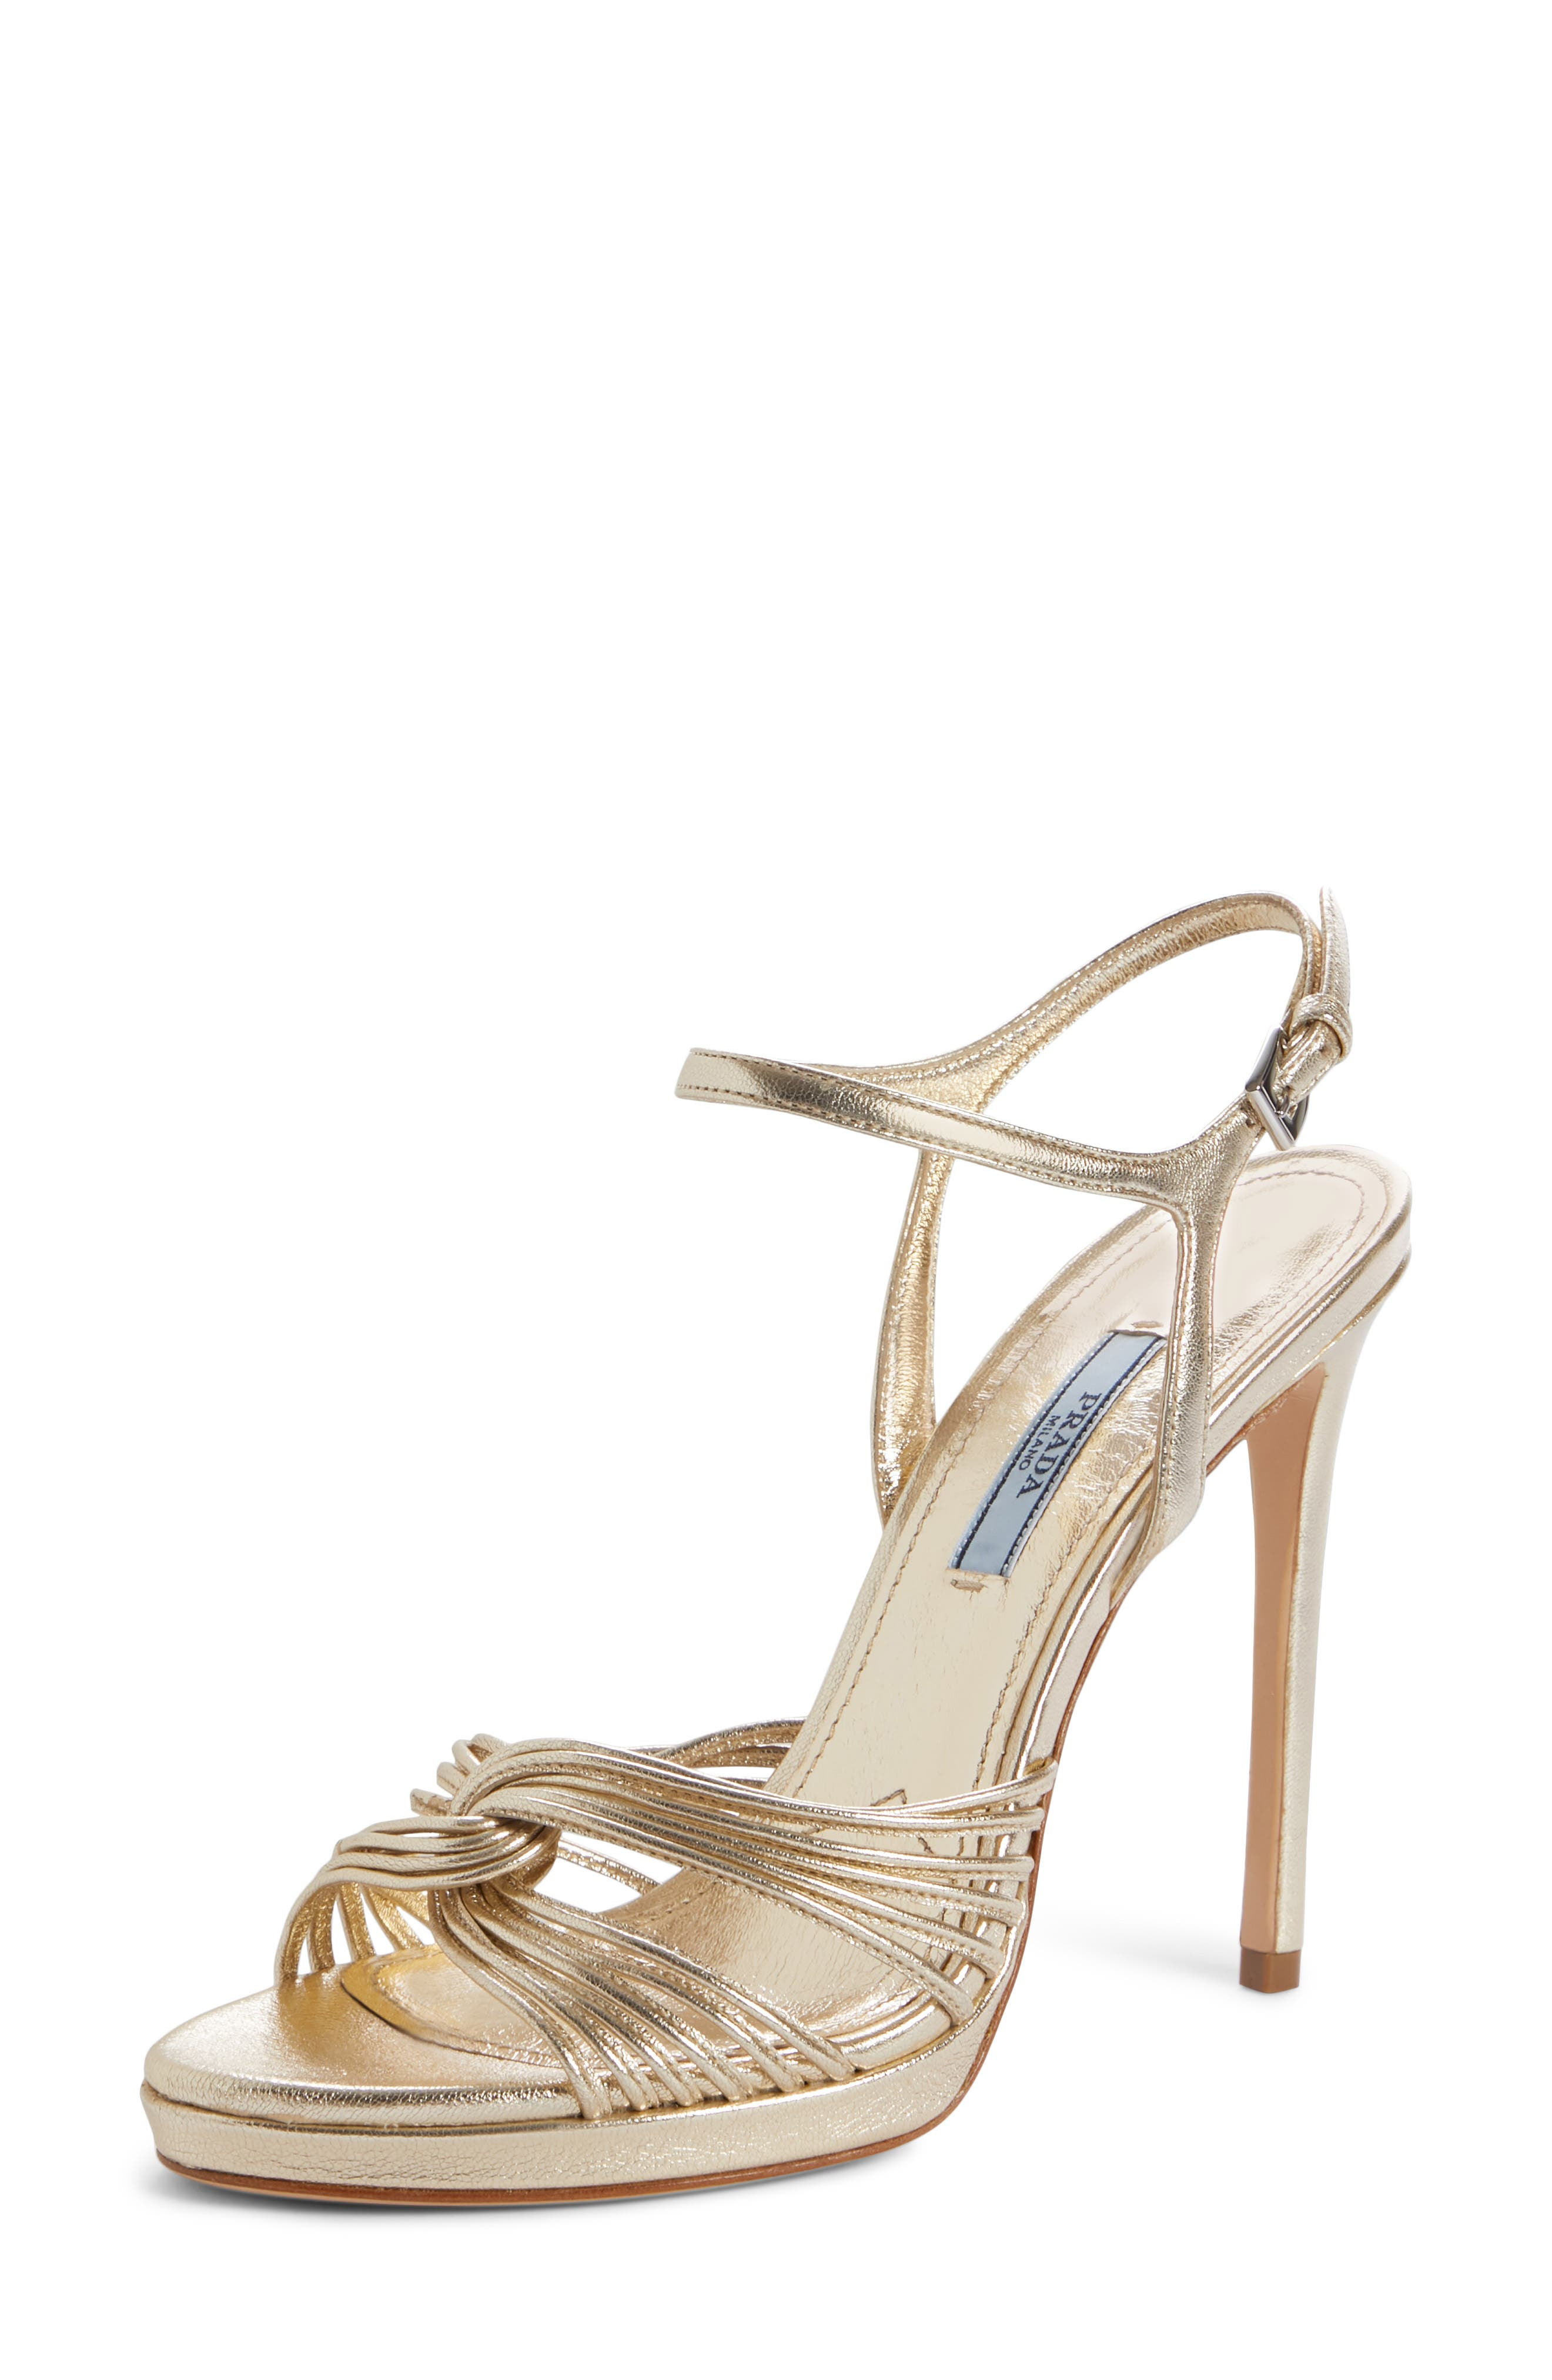 Roping Ankle Strap Sandal,                             Main thumbnail 1, color,                             PIRITE LEATHER